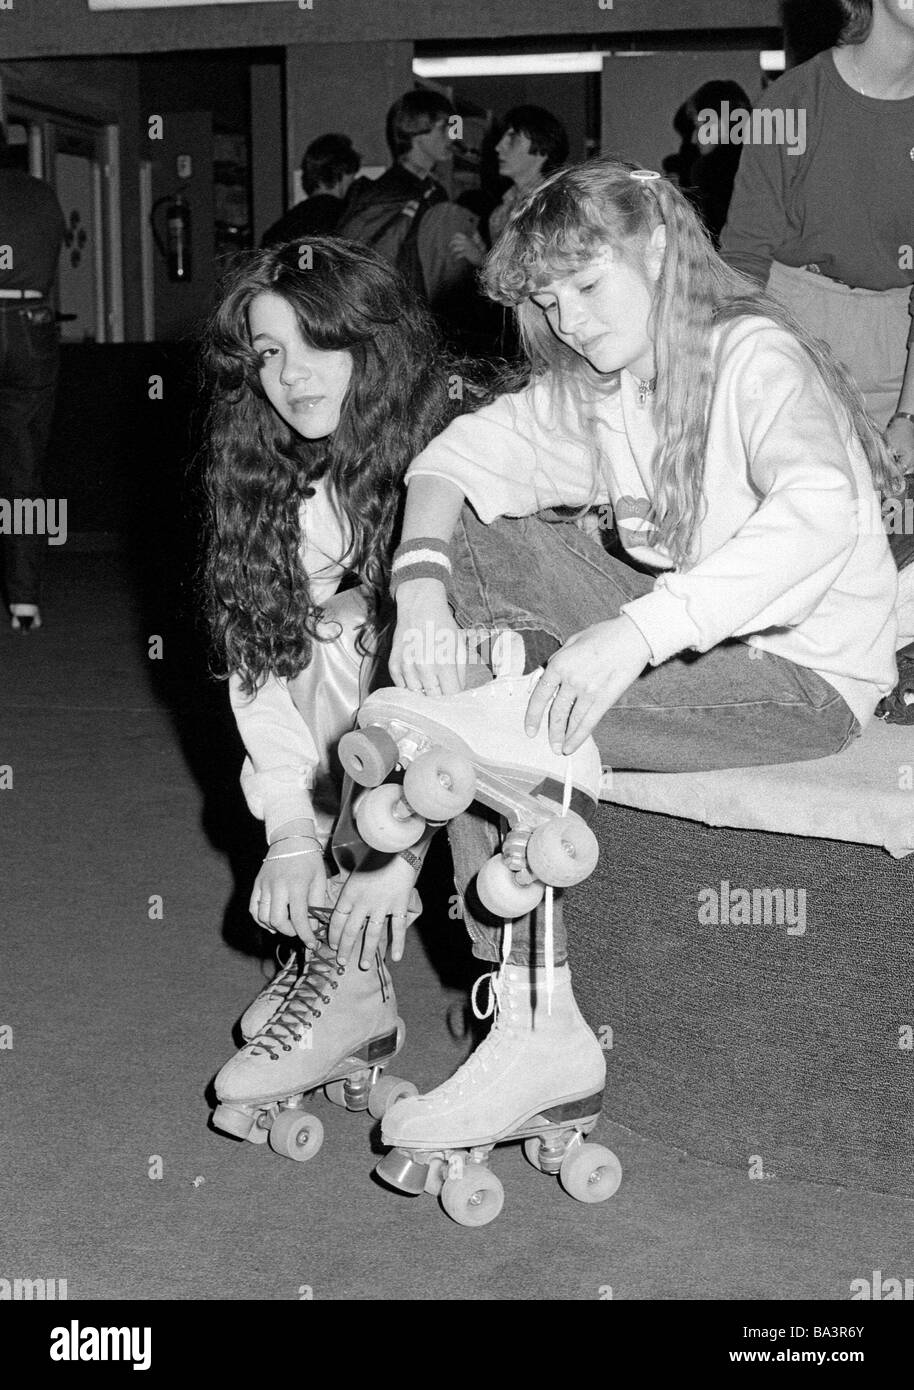 Eighties, black and white photo, people, two young girls sit side by side and put on their rollerblades, jeans trousers, - Stock Image